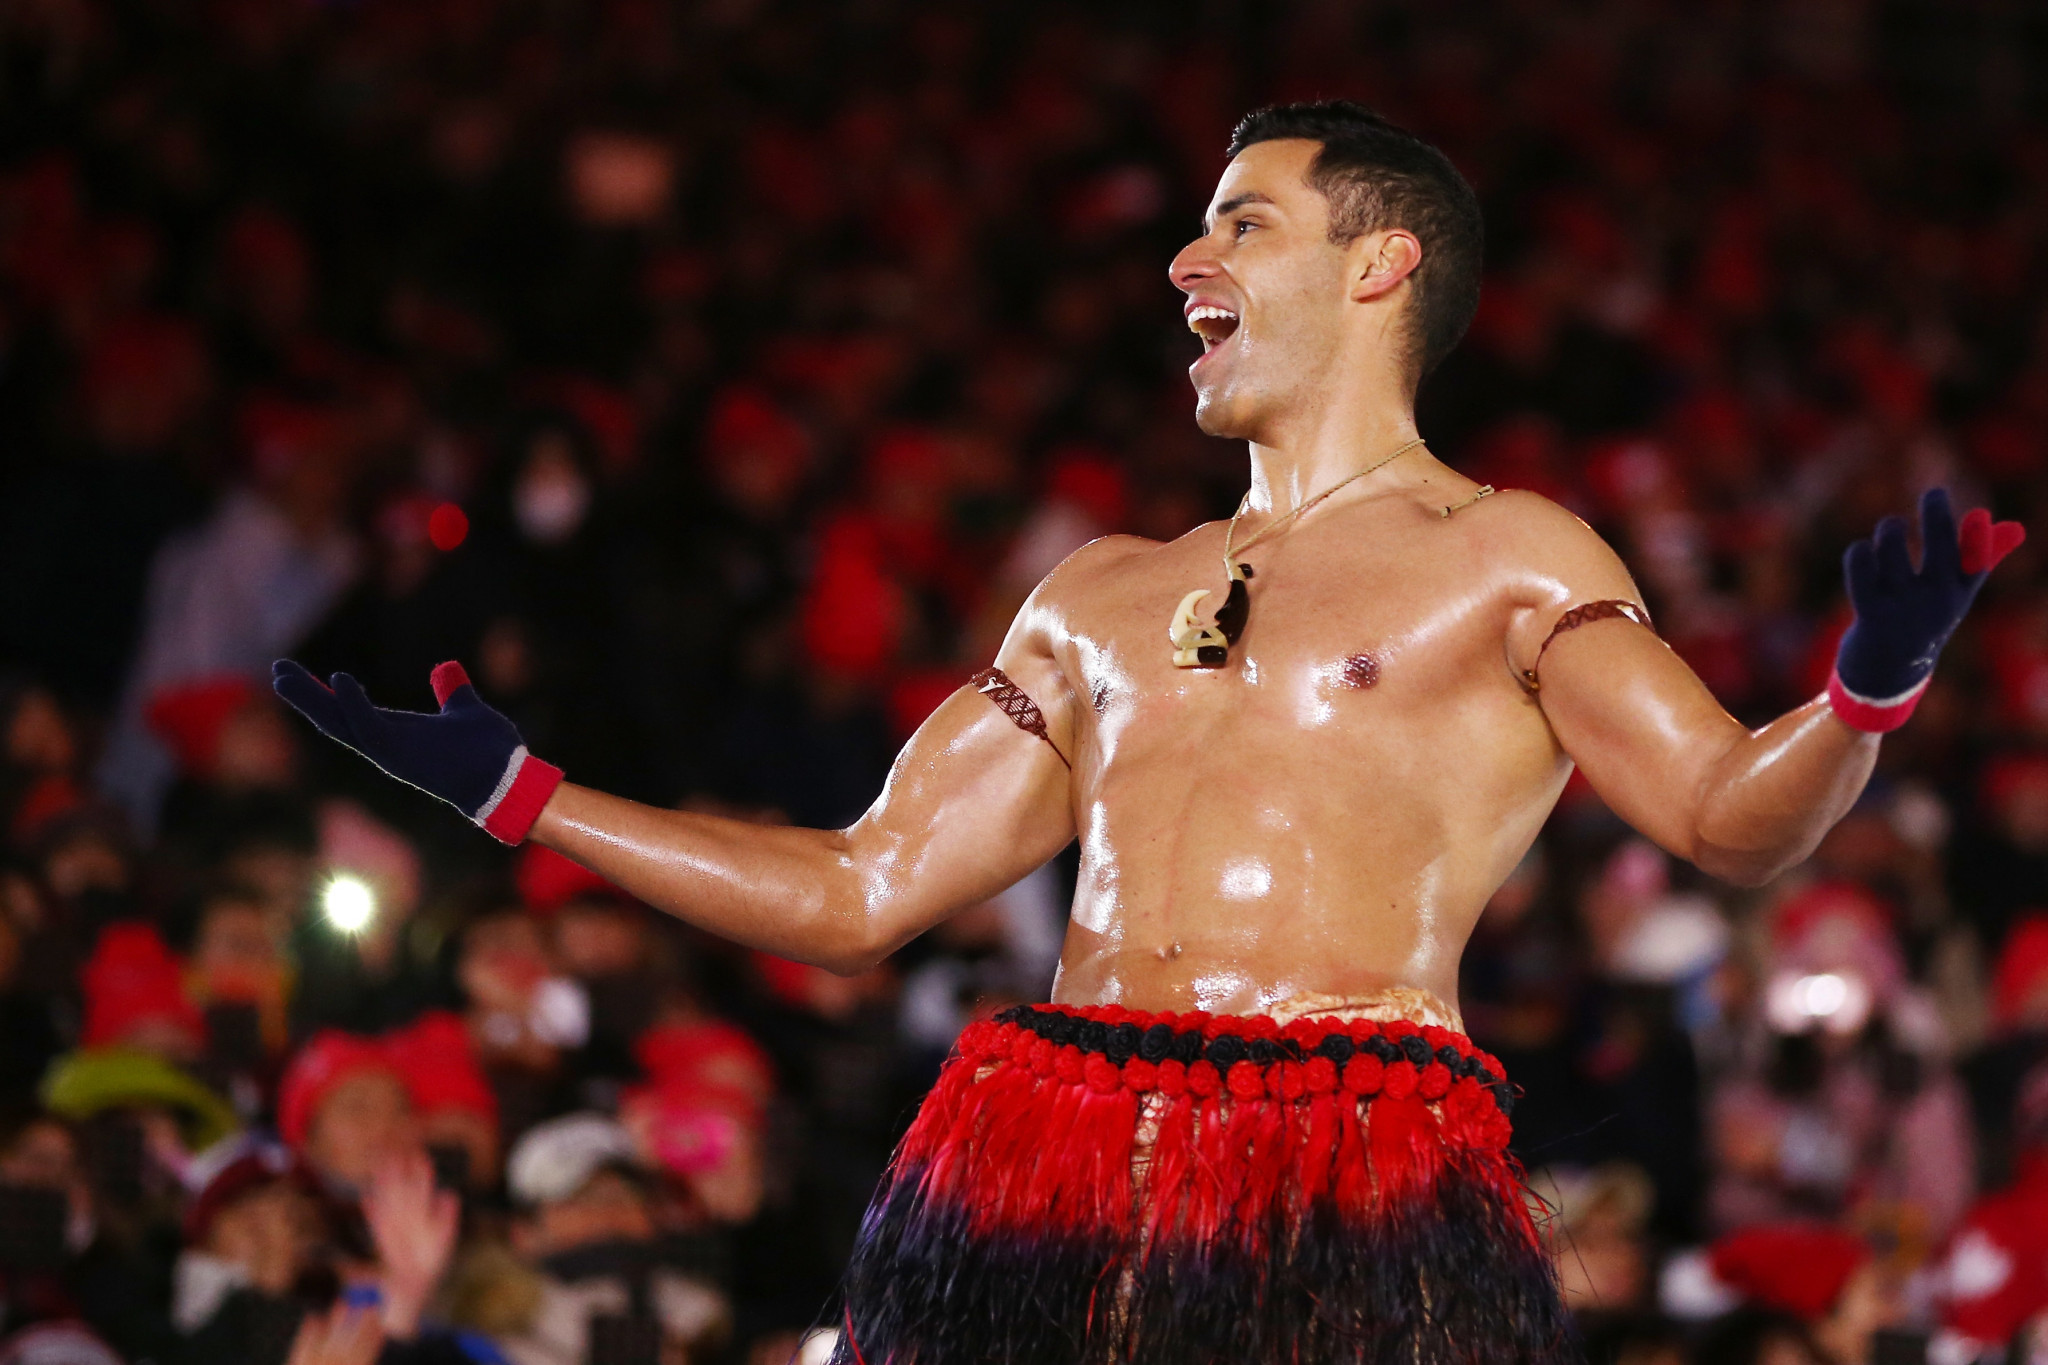 Tonga's Pita Taufatofua will try to take part in his third Olympic sport at the Tokyo 2020 Games ©Getty Images